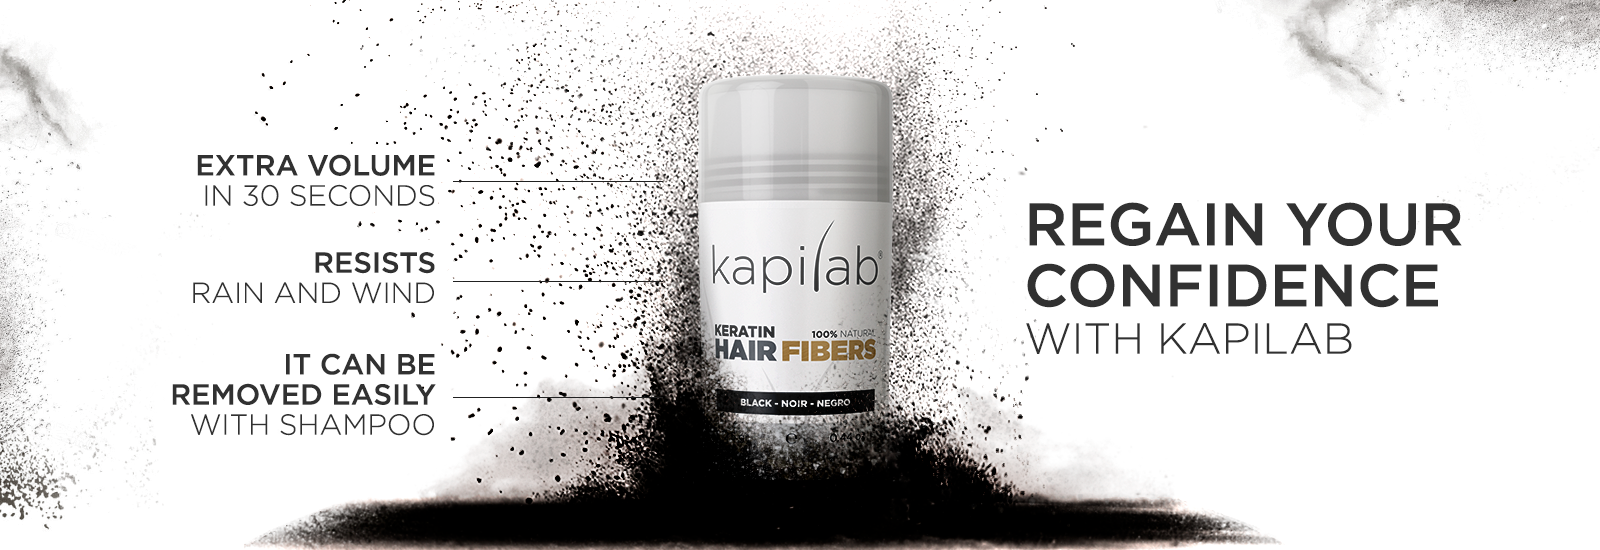 Kapilab Hair Fibers